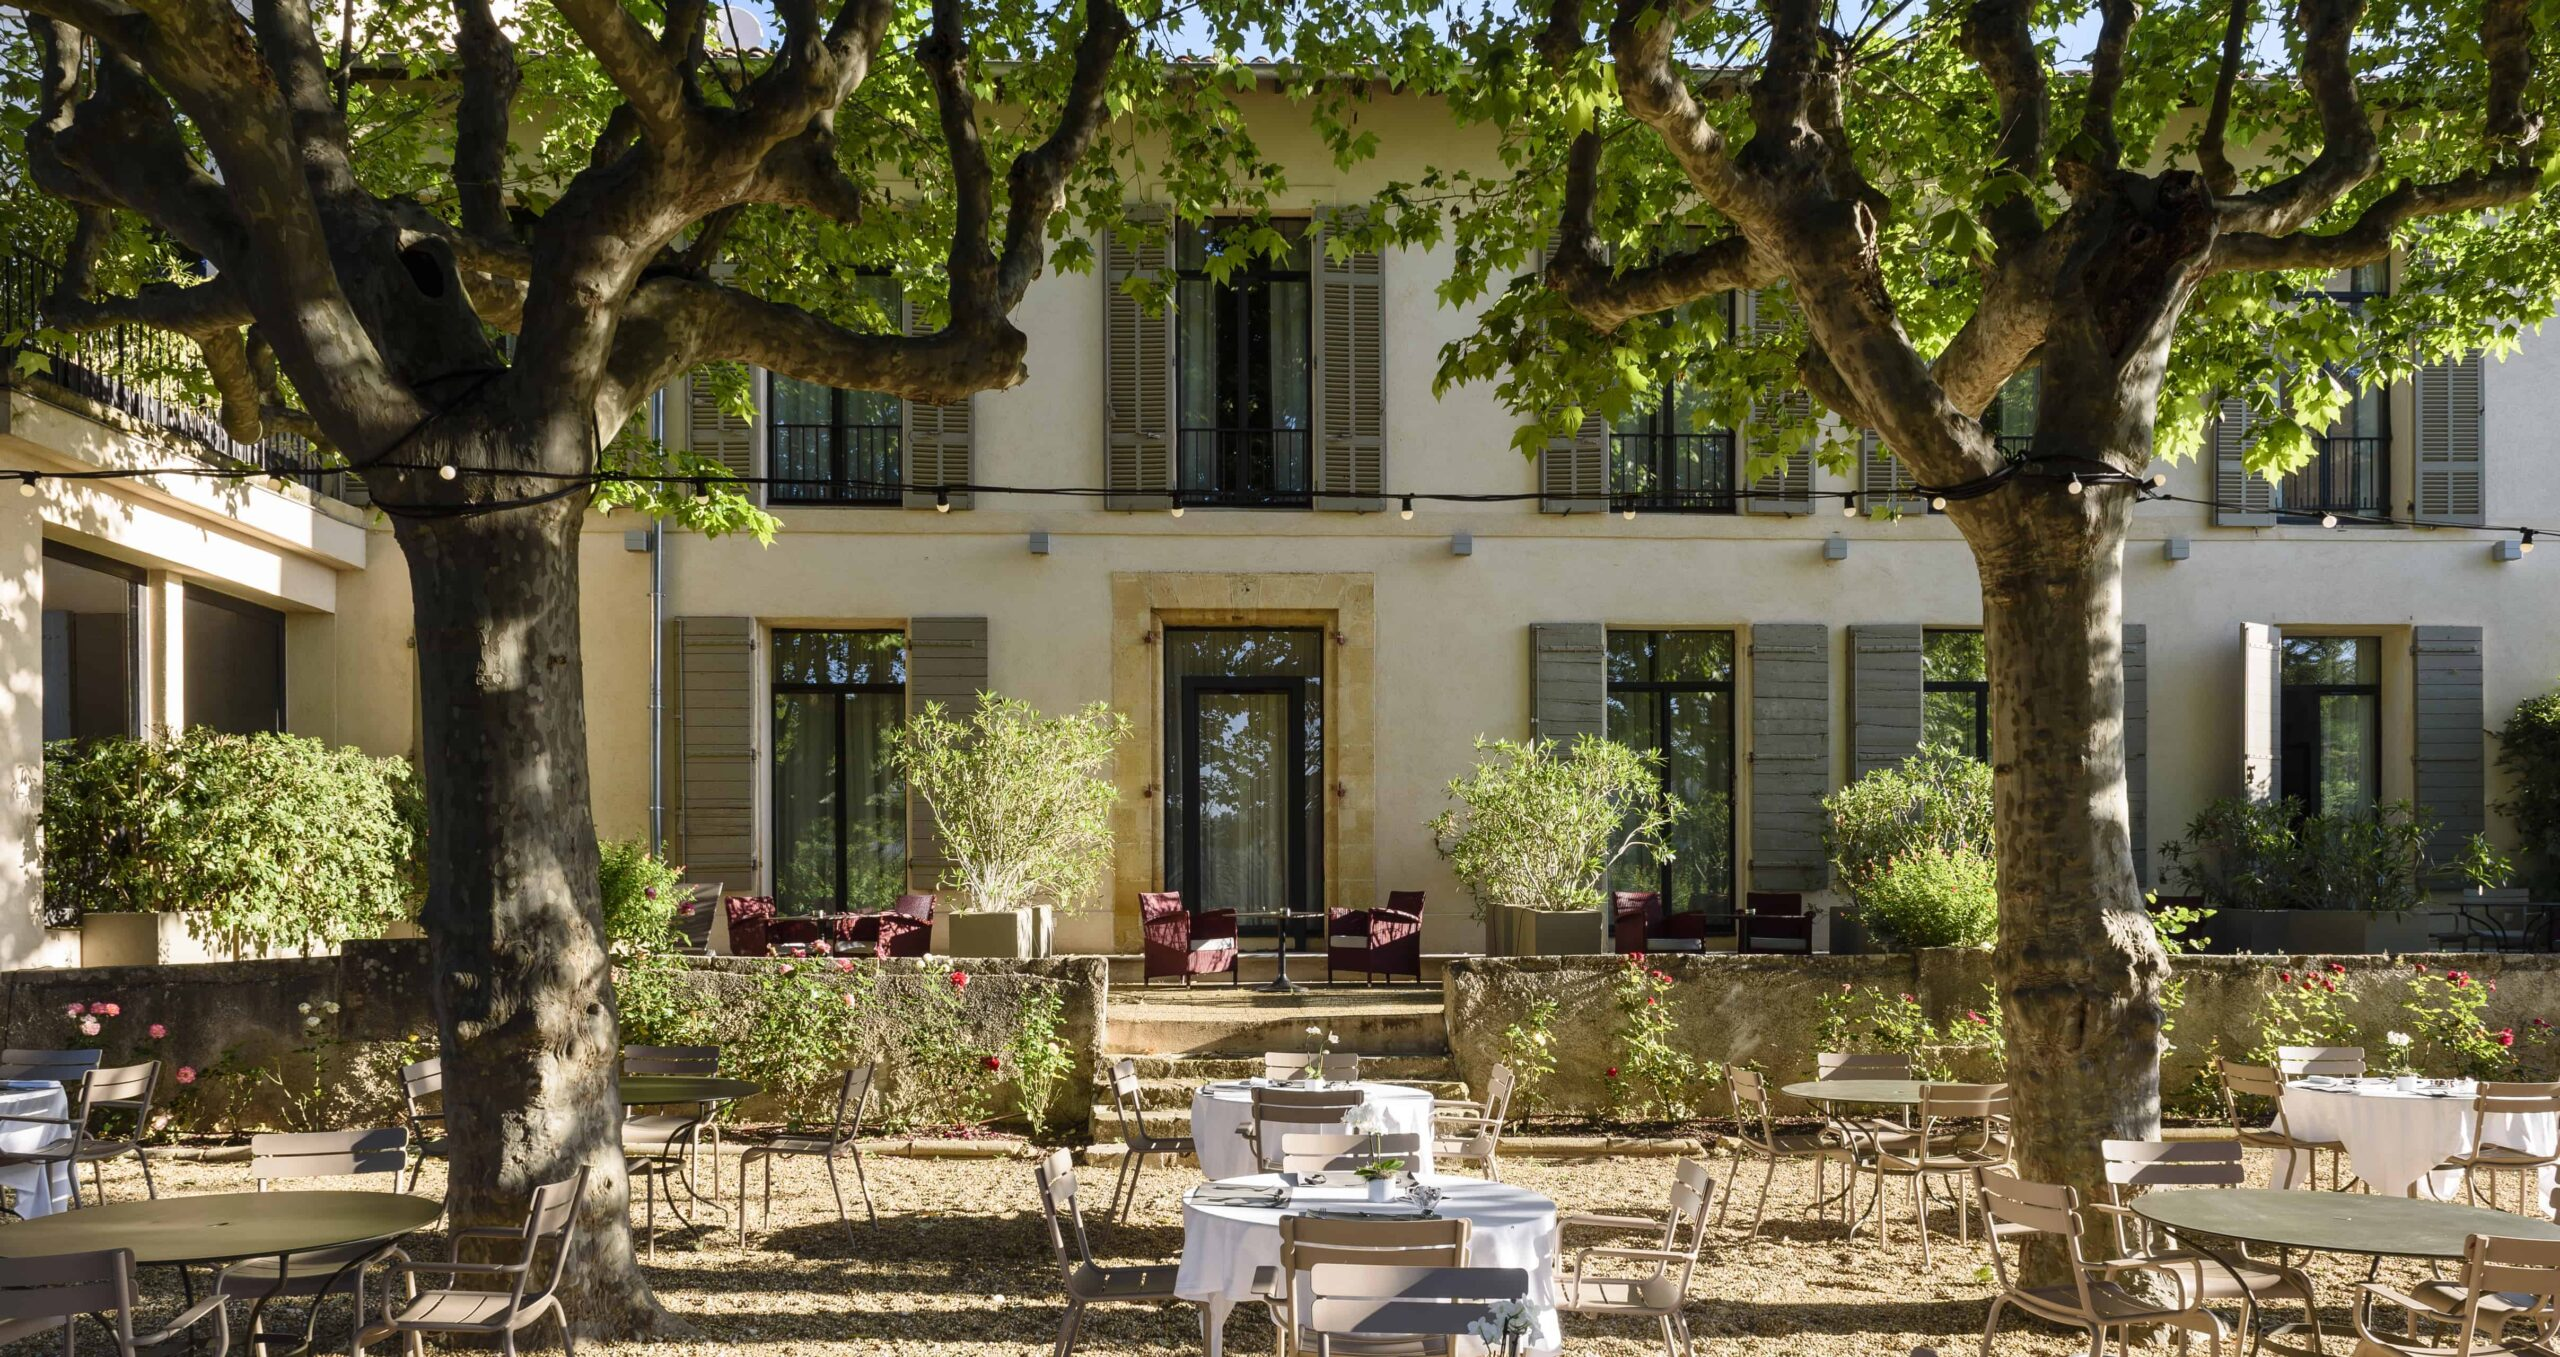 Les Lodges Ste Victoire - Hotel in Provence